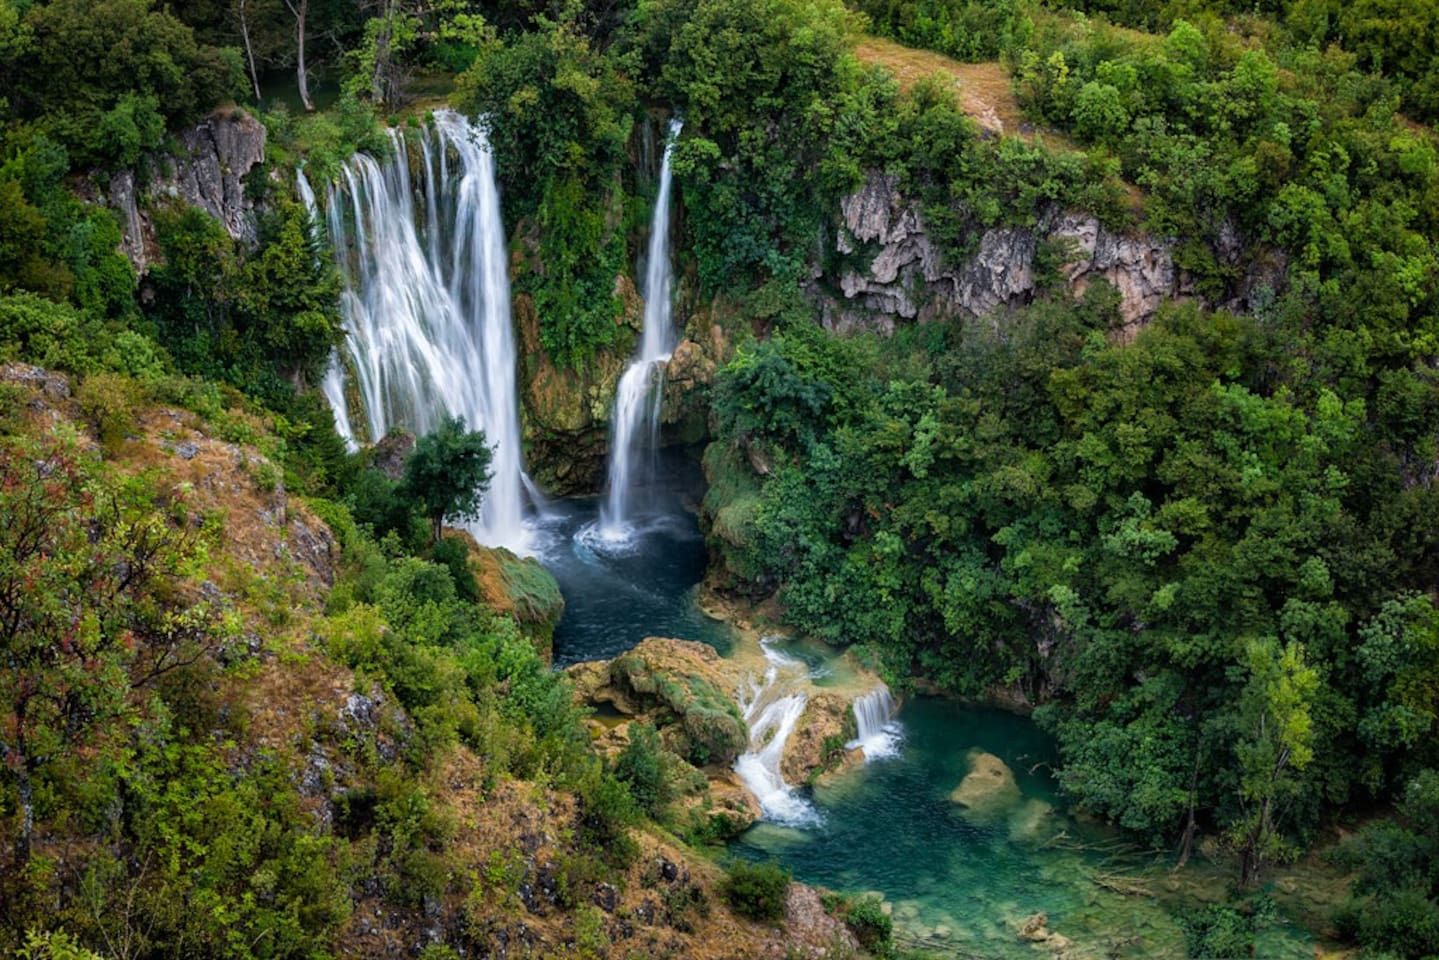 Northern part of National park Krka, longest waterfall, Manojlovac Waterfall, 10-15 mins drive, one can walk down by the waterfall, have picnic and rest all day long in a richness of nature and sounds